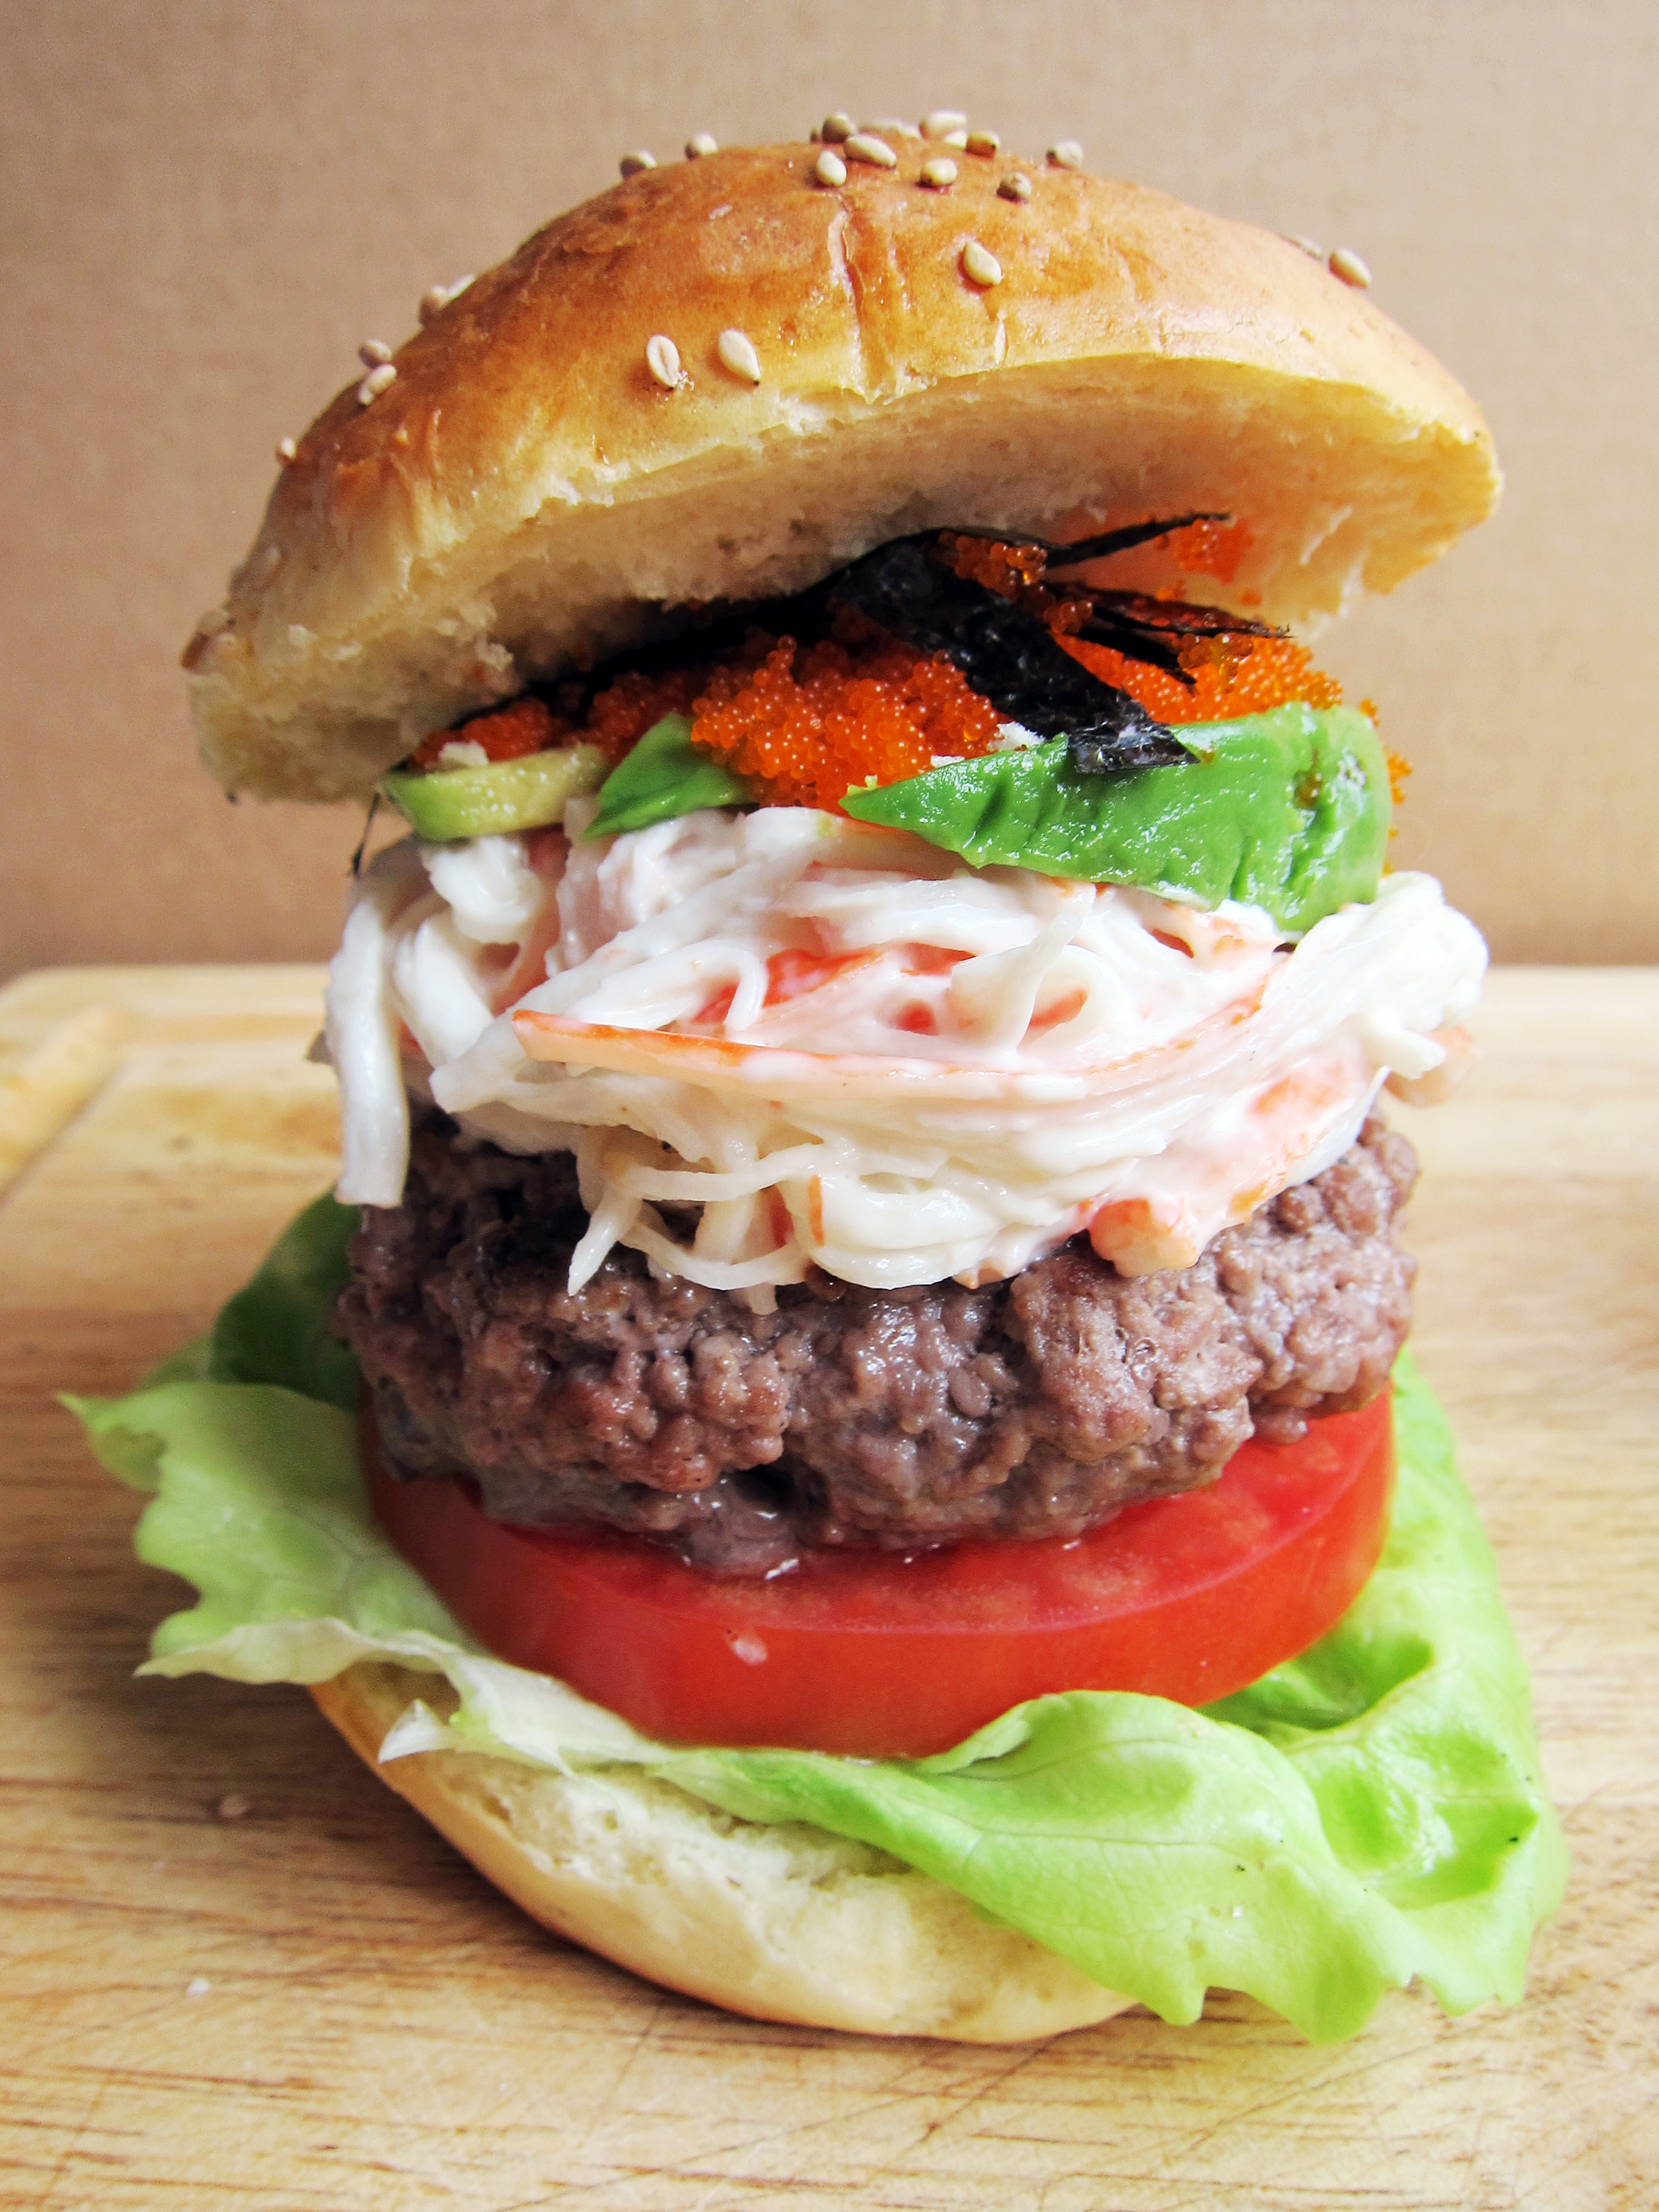 The Krabby Patty (California Roll Burger) | The Busy Spatula